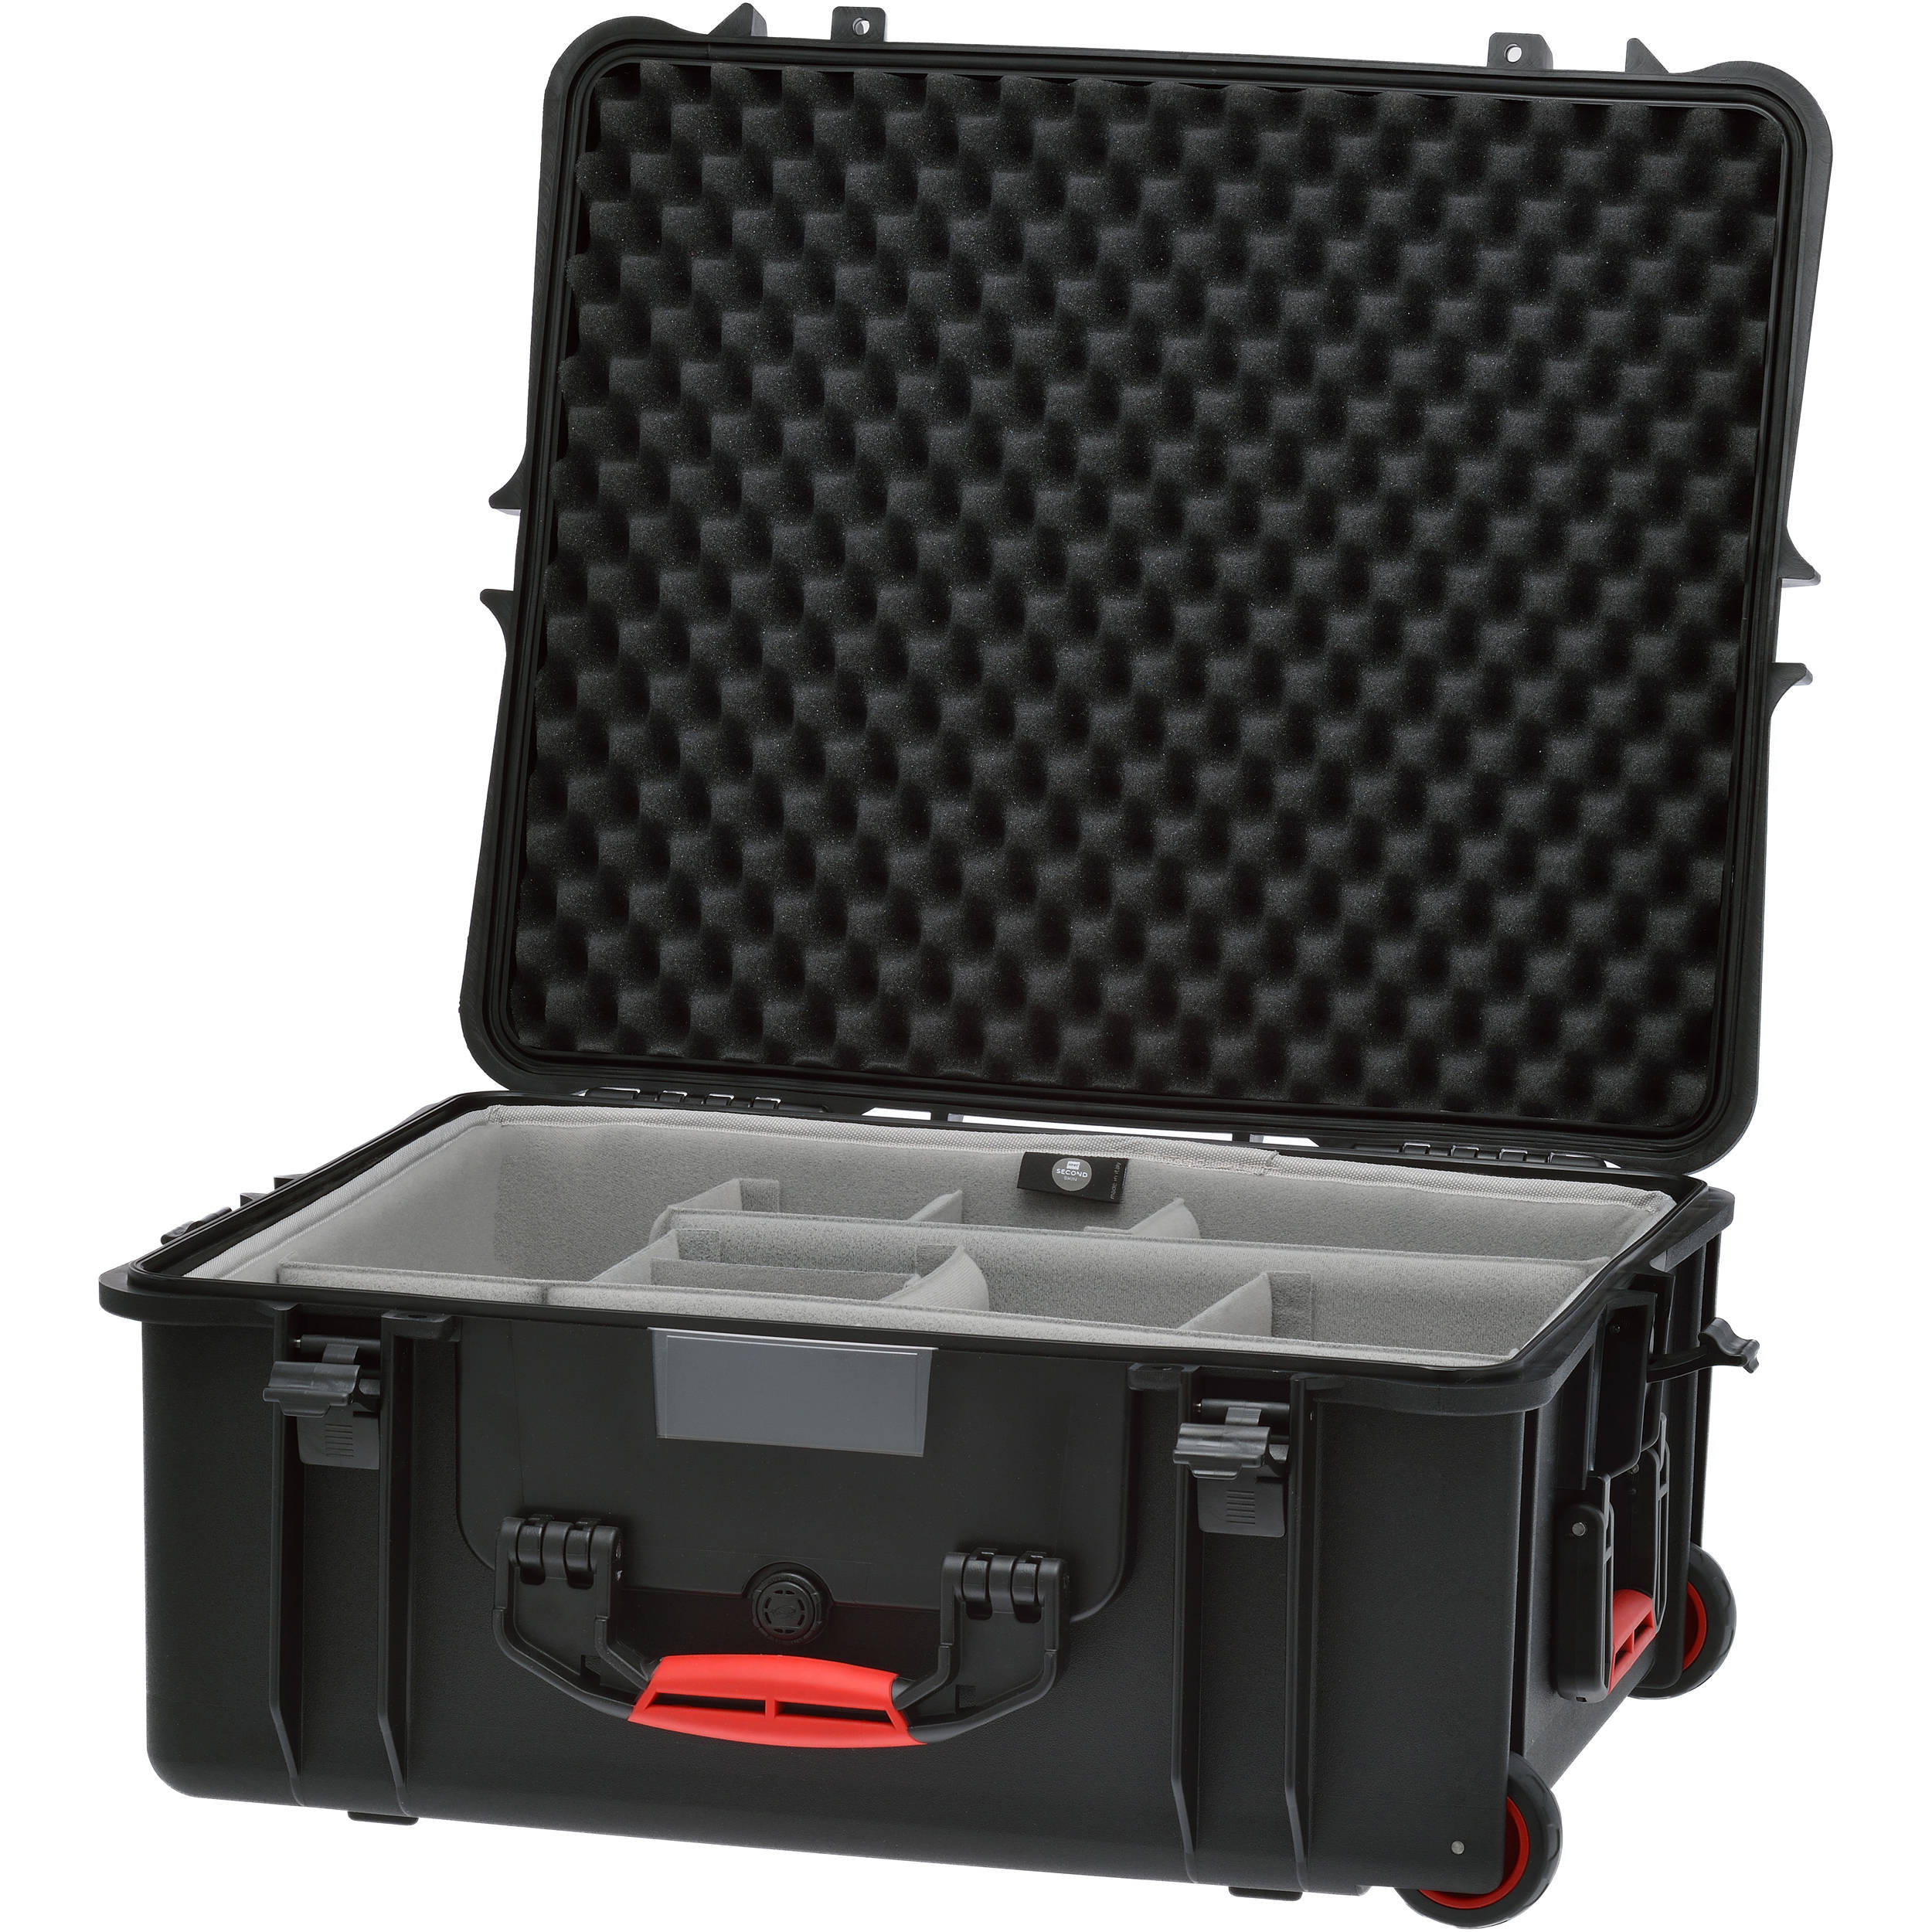 346925efaeb3 HPRC 2700W Rolling Resin Case with Second Skin and Dividers Kit (Black)